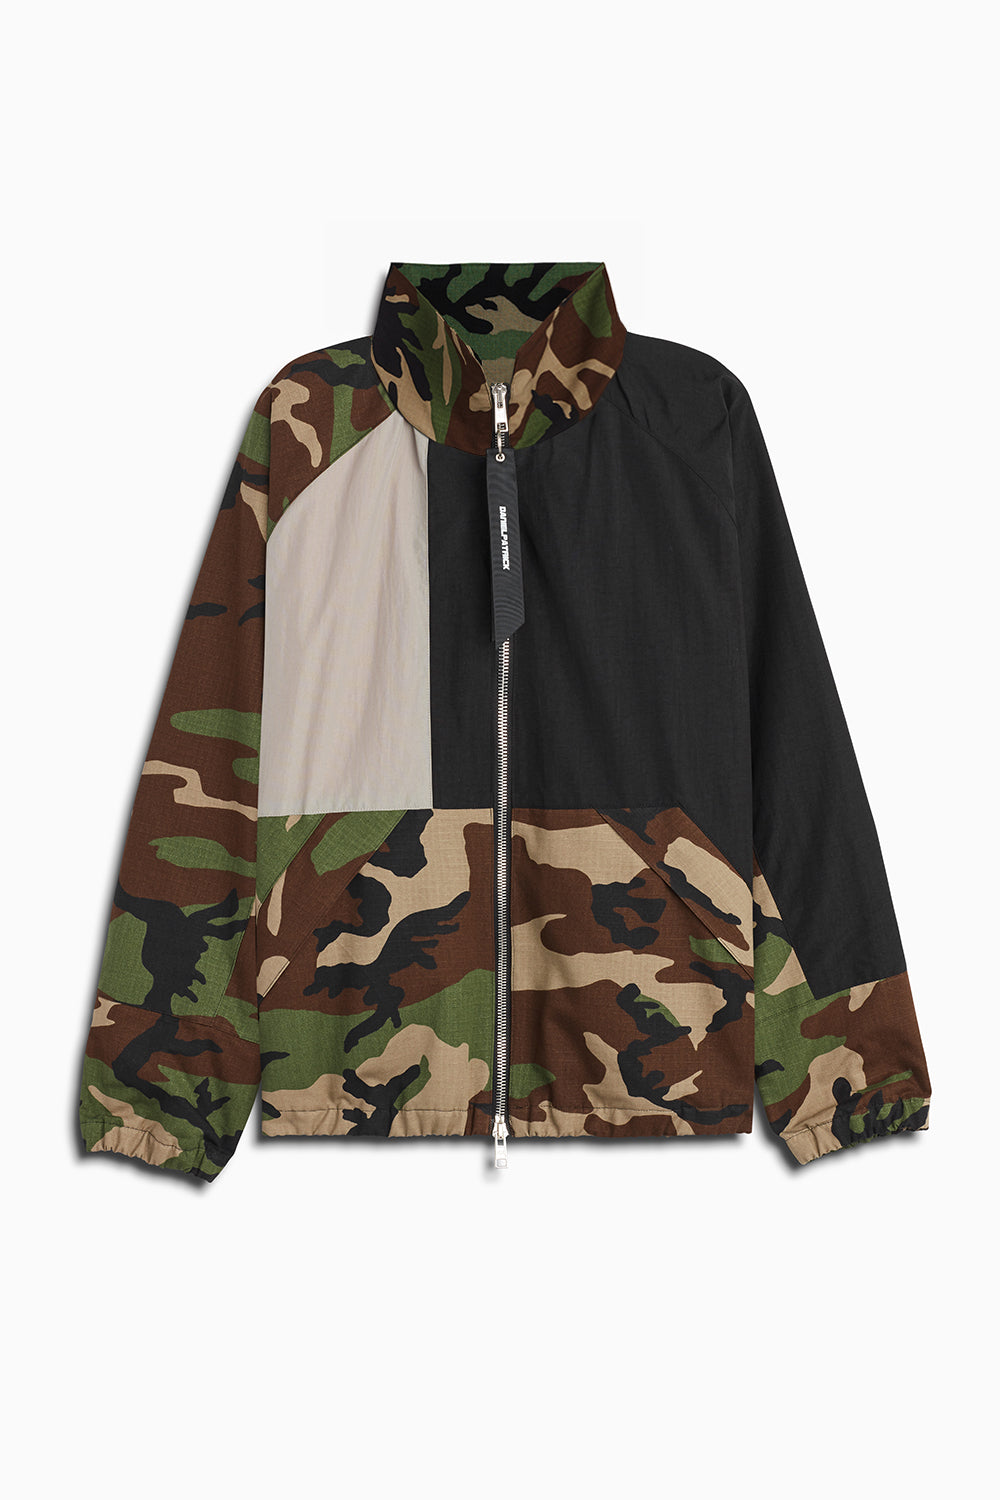 M93 track jacket in camo/smog grey/black by daniel patrick